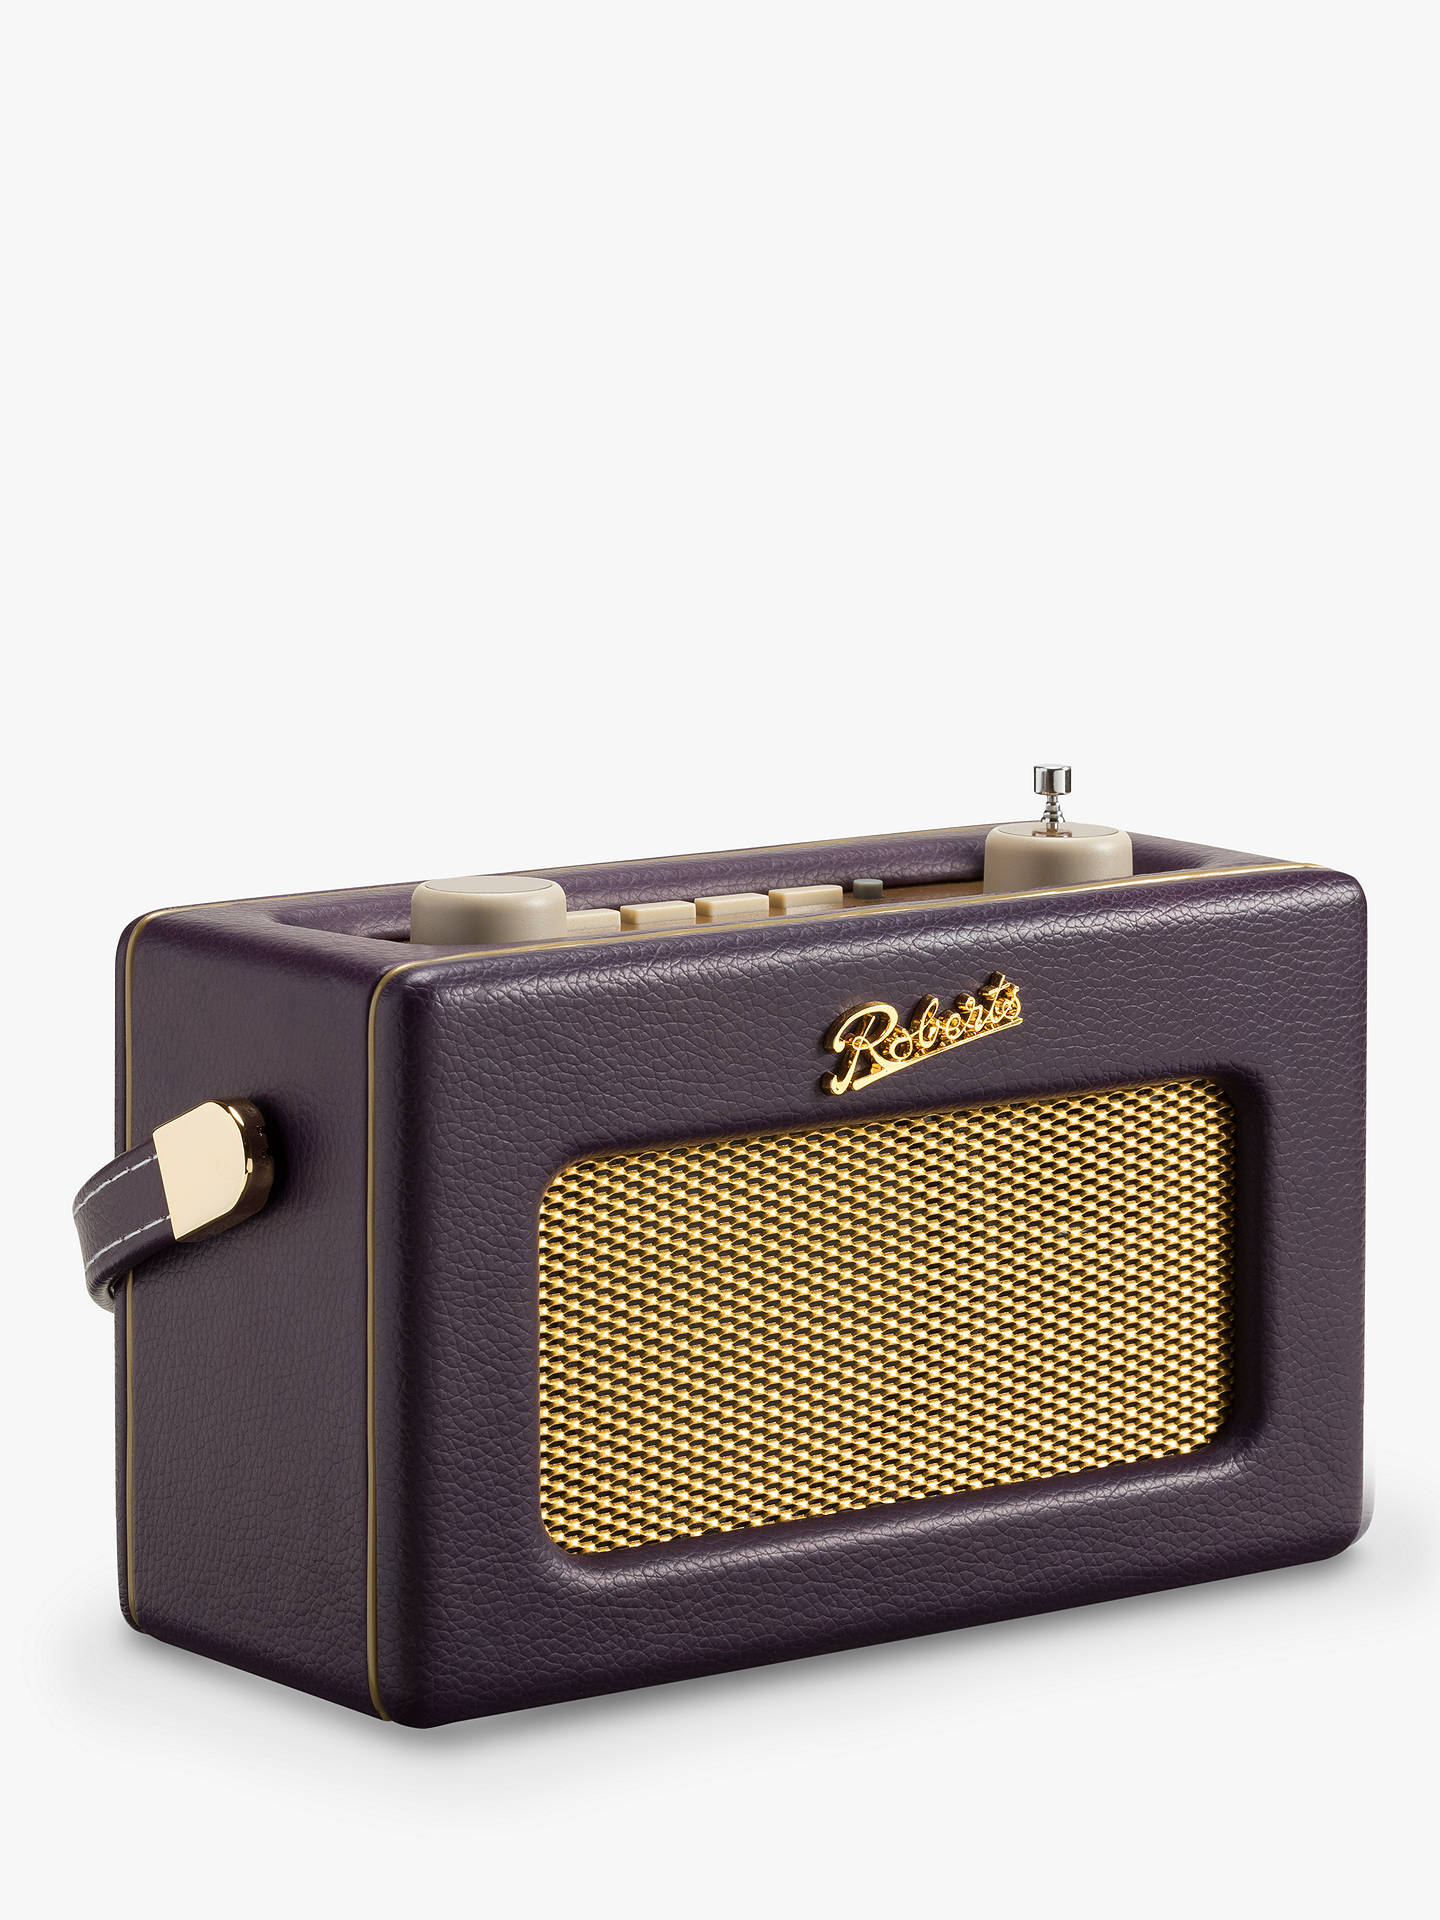 Buy ROBERTS Revival Uno DAB/DAB+/FM Digital Radio with Alarm, Mulberry Purple Online at johnlewis.com